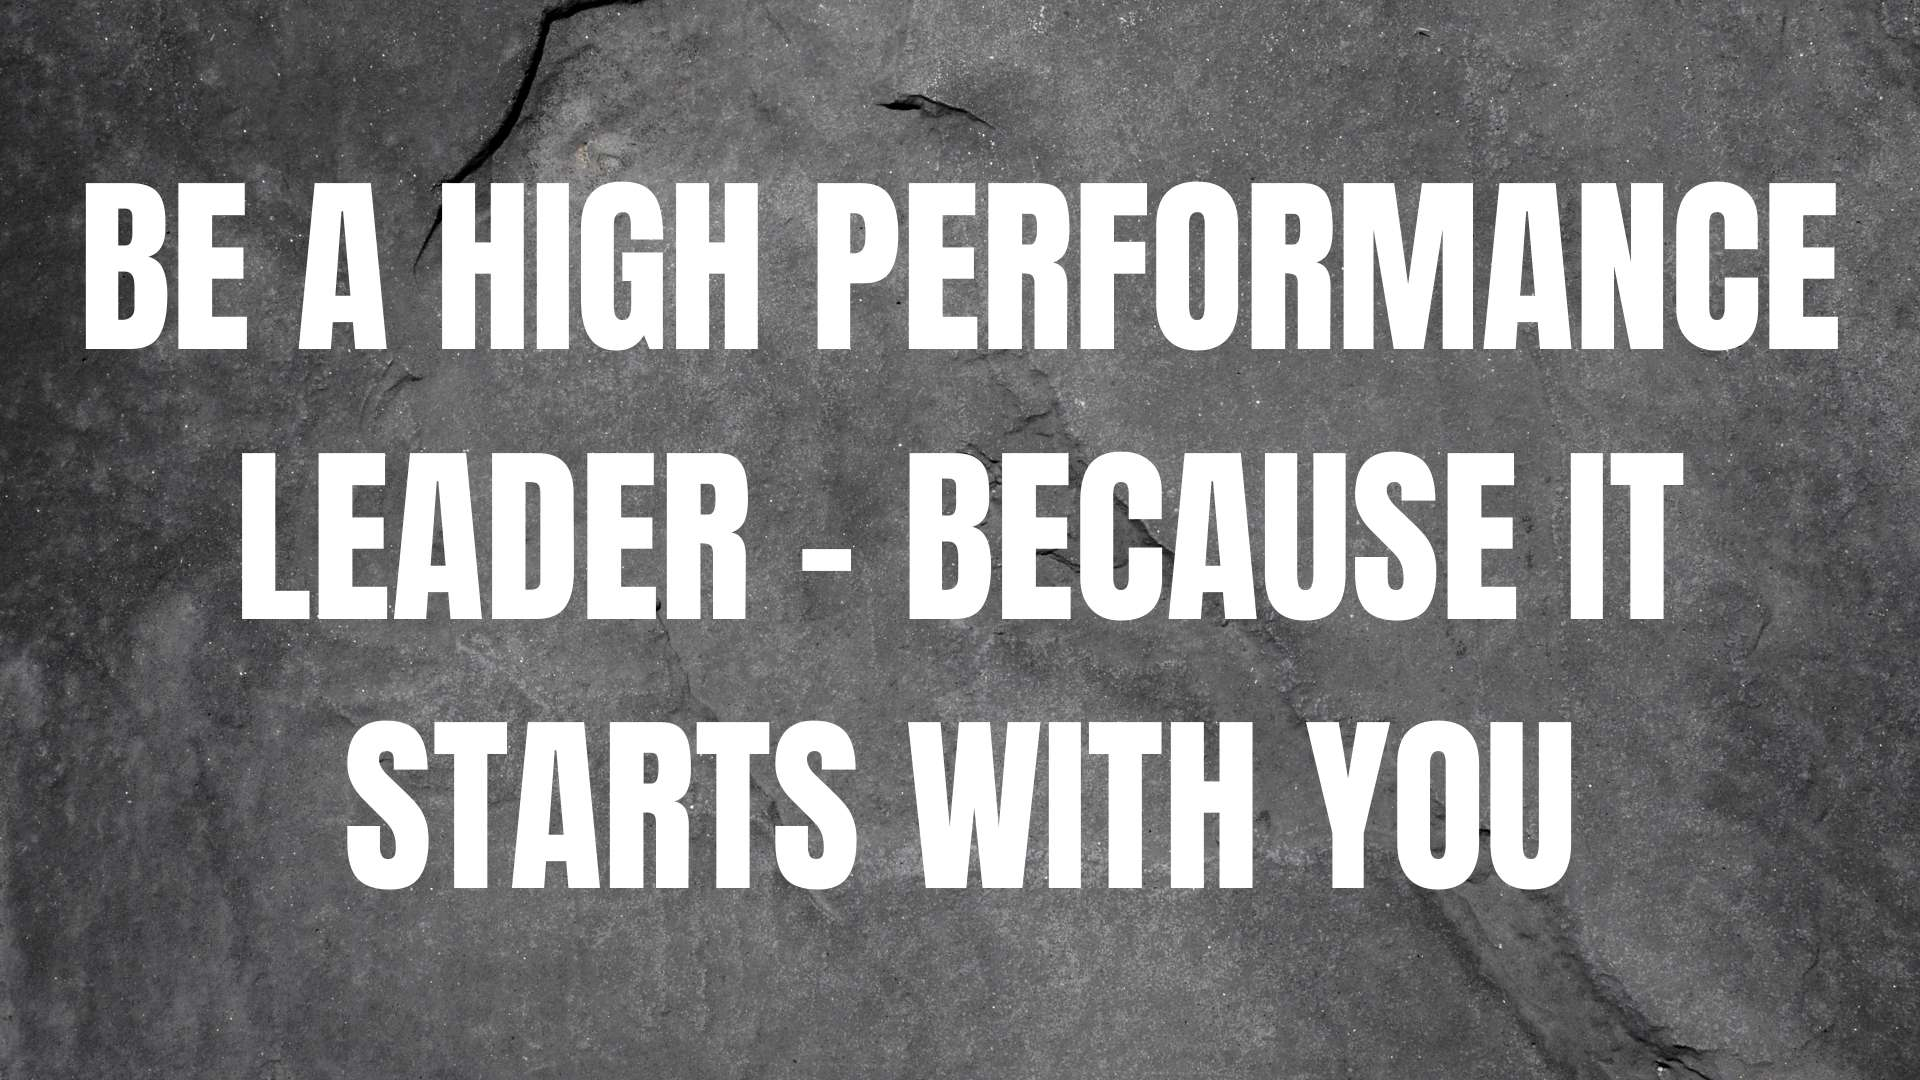 Be a high performance leader - because it starts with you